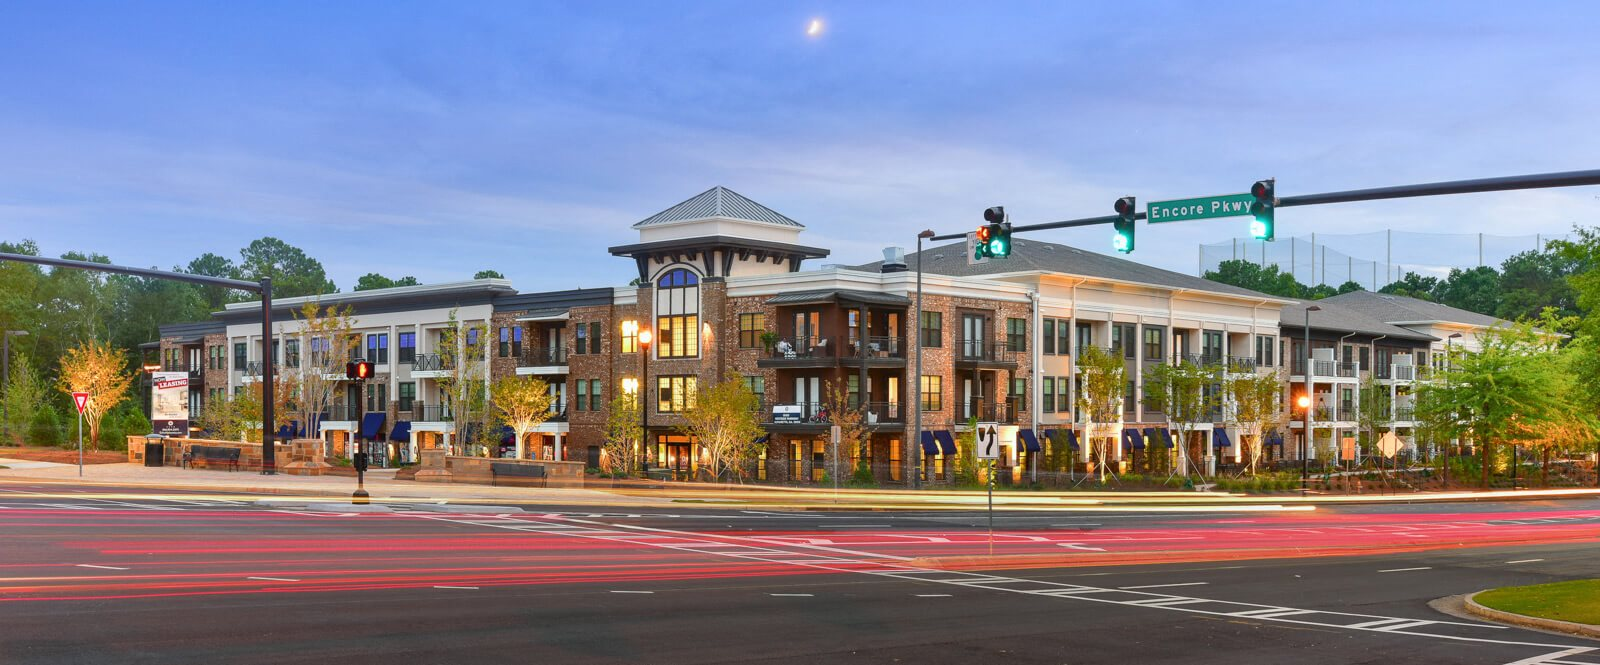 Modern Exteriors Give a Wonderful First Impression of Echo at North Pointe Center. Enjoy our Endless Amenities and Superb Location at Echo at North Pointe Center Apartment Homes, Alpharetta, GA 300